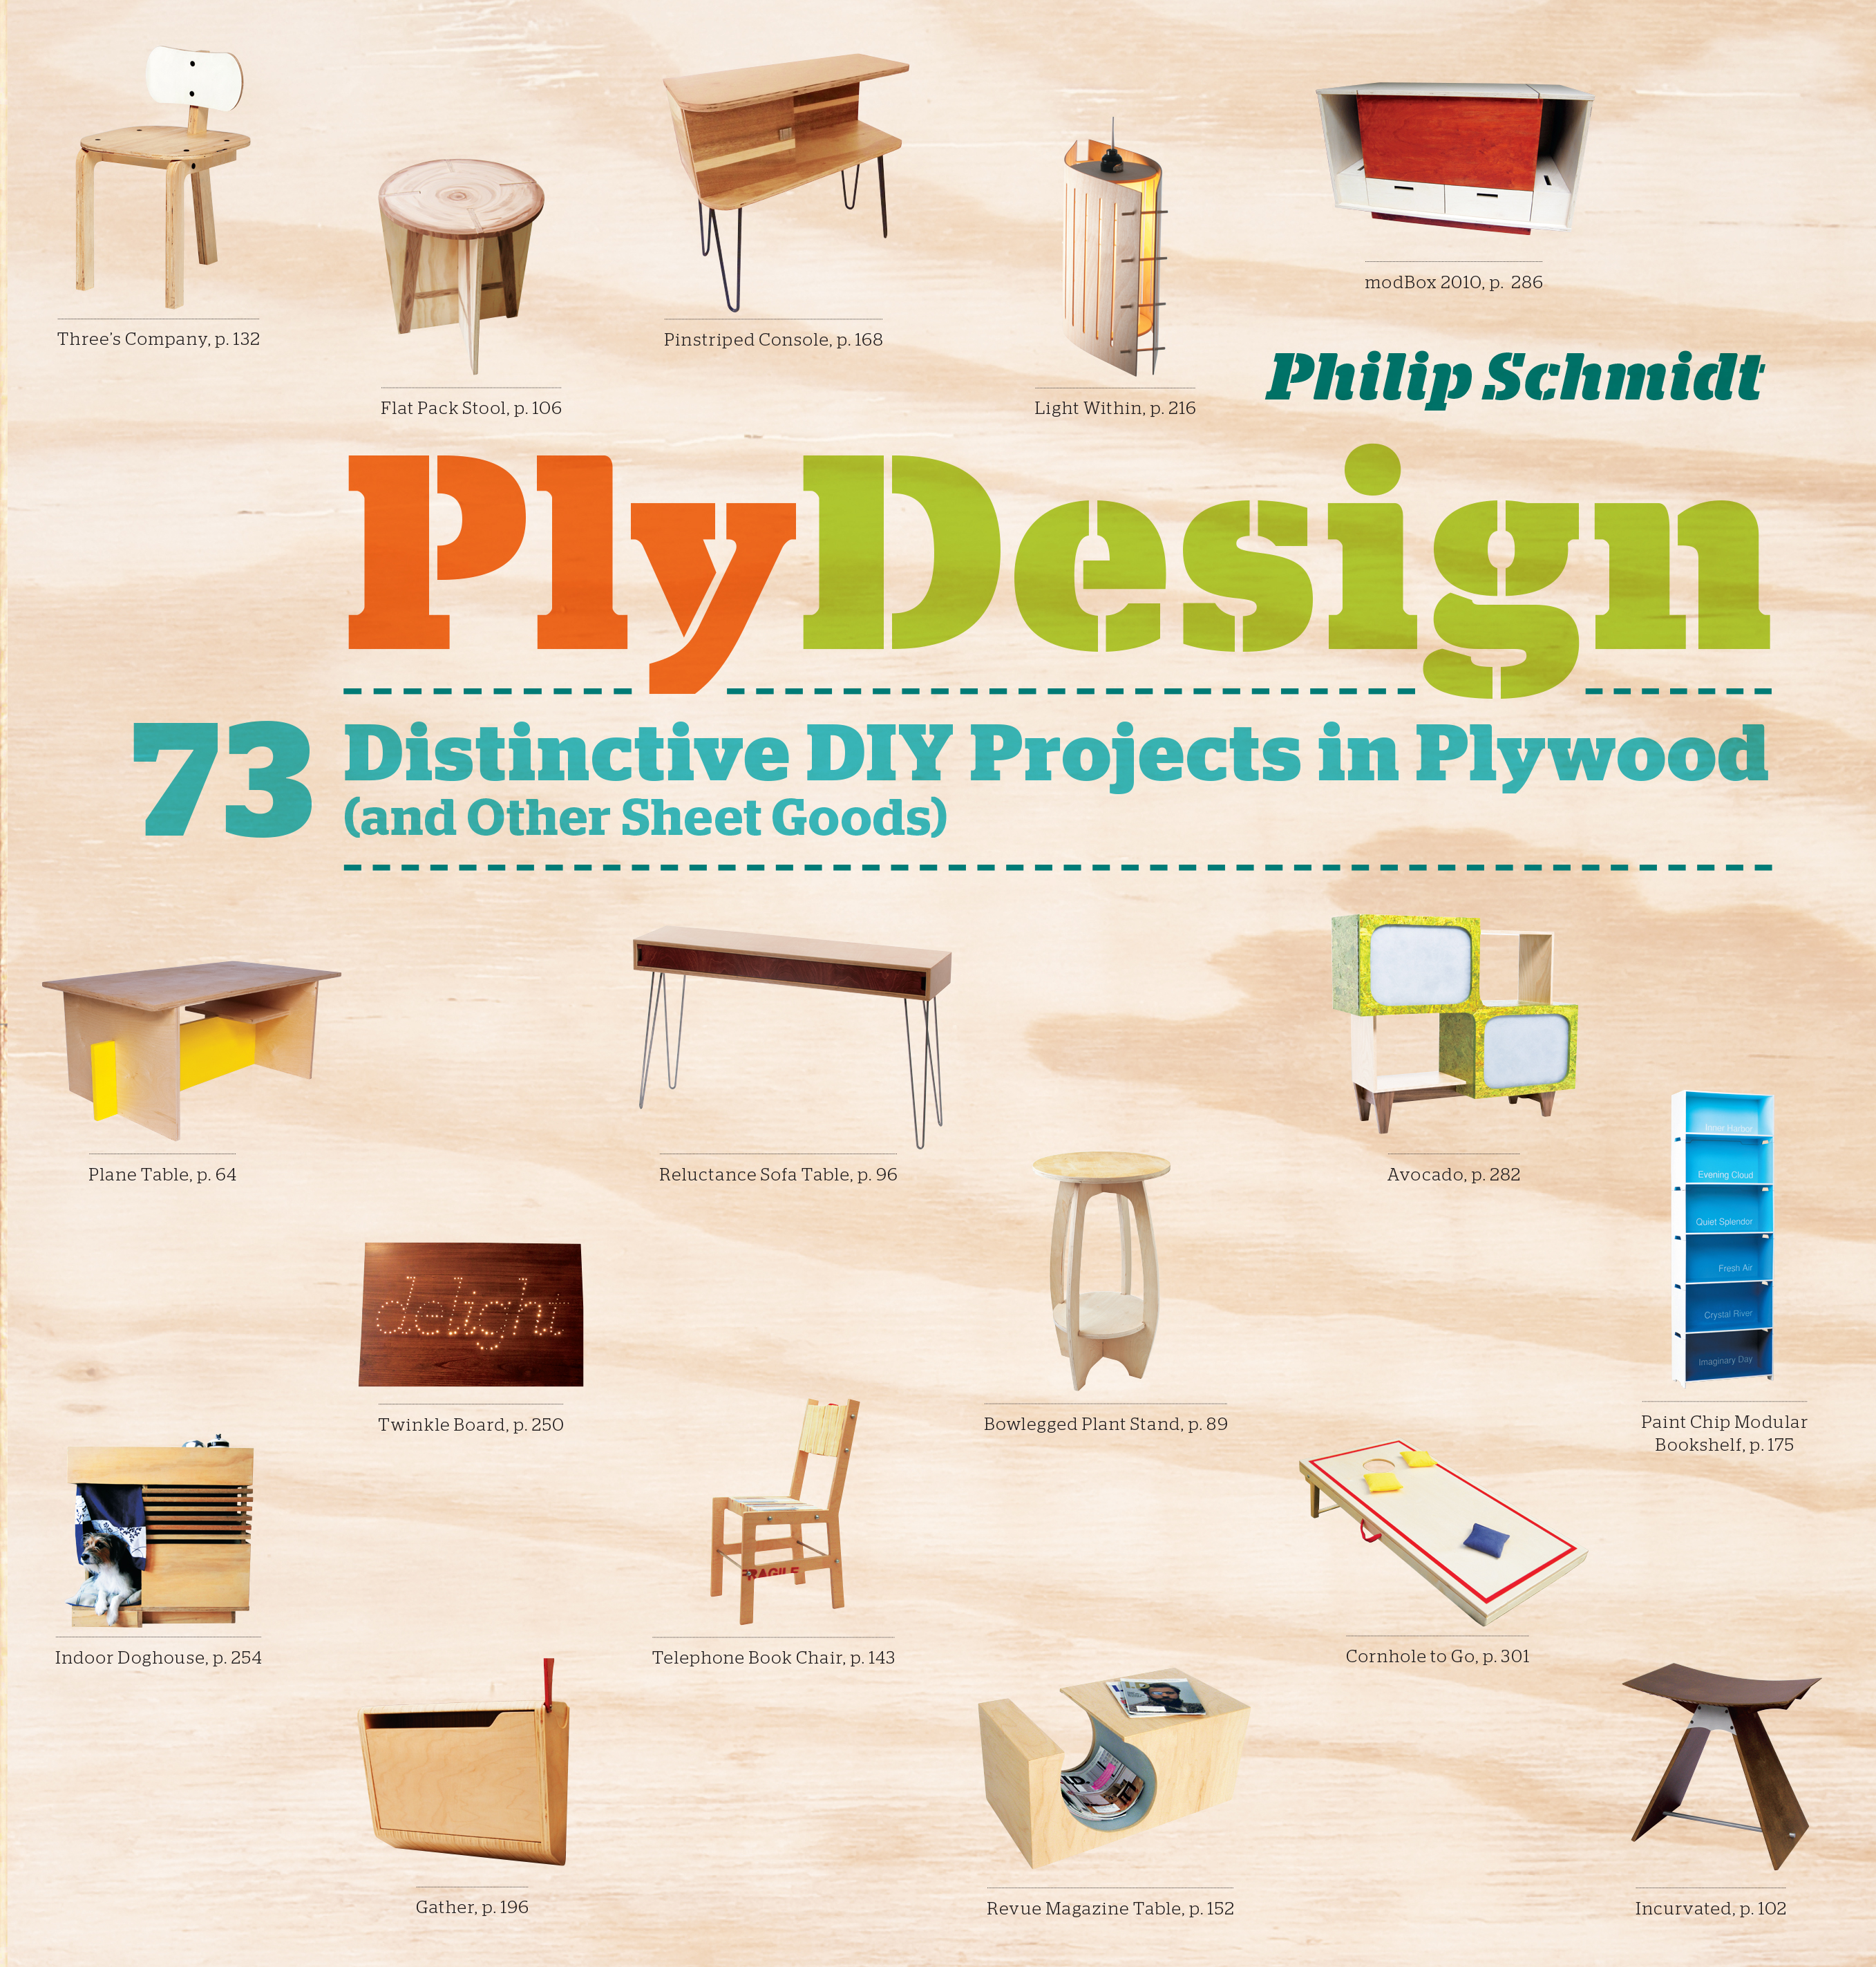 PlyDesign 73 Distinctive DIY Projects in Plywood (and other sheet goods) - Philip Schmidt